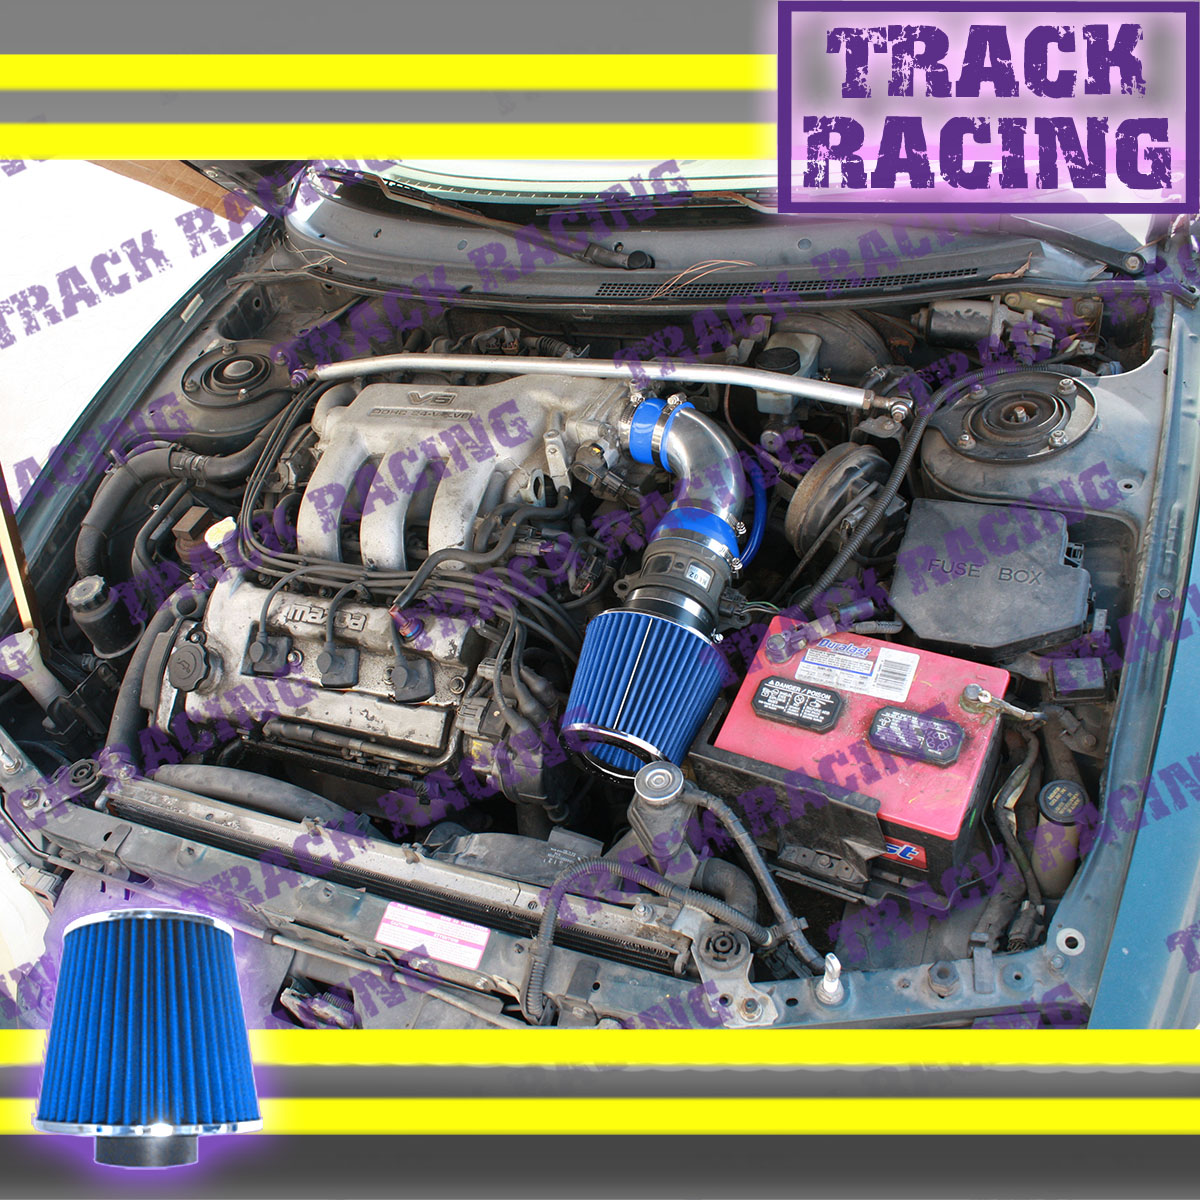 hight resolution of details about 93 94 95 96 97 ford probe gt mazda mx6 626 2 5l v6 air intake kit blue tb